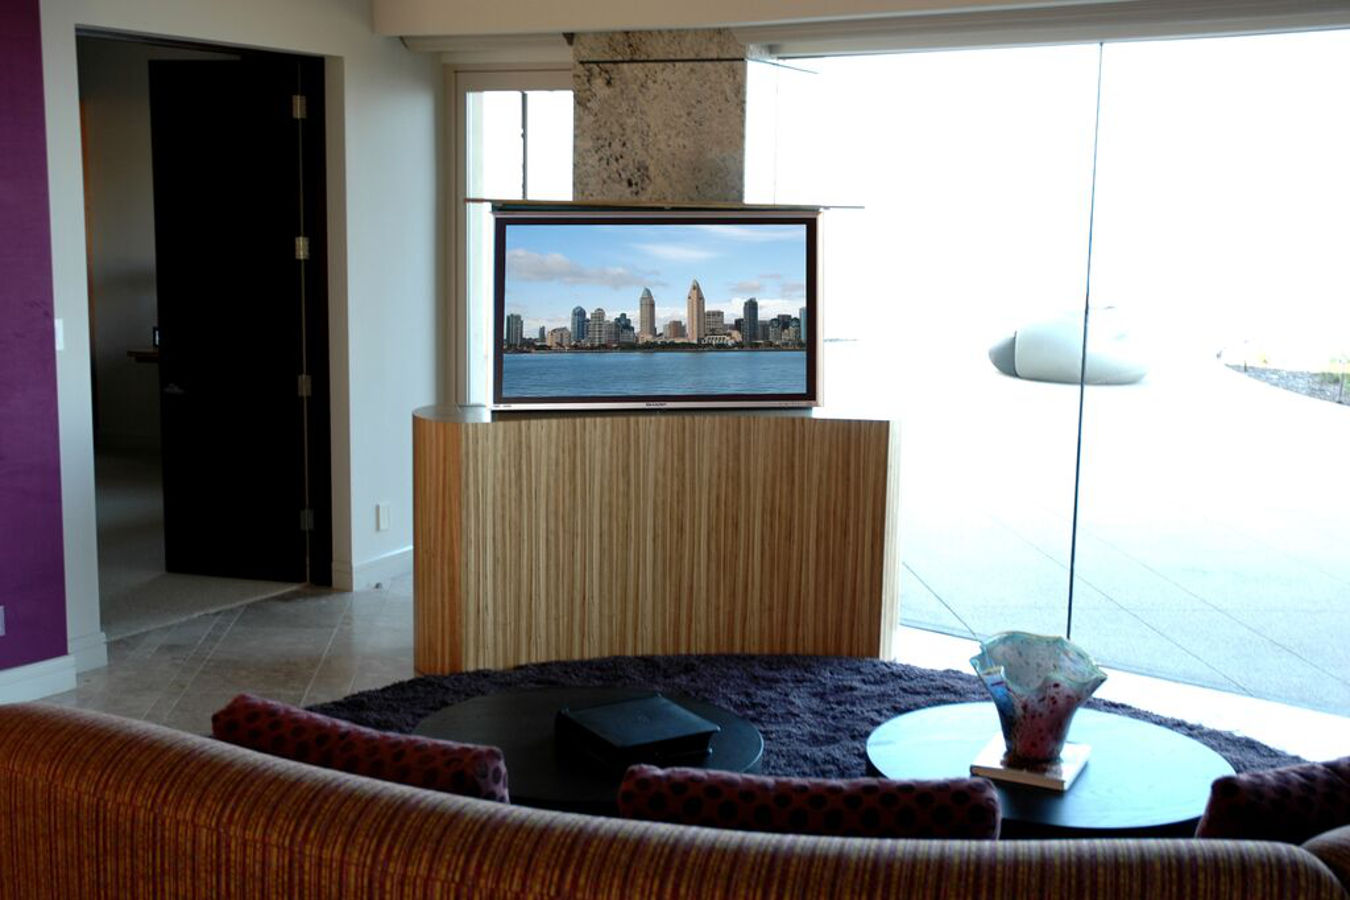 Modern TV lift cabinet center of room Cabinet Tronix